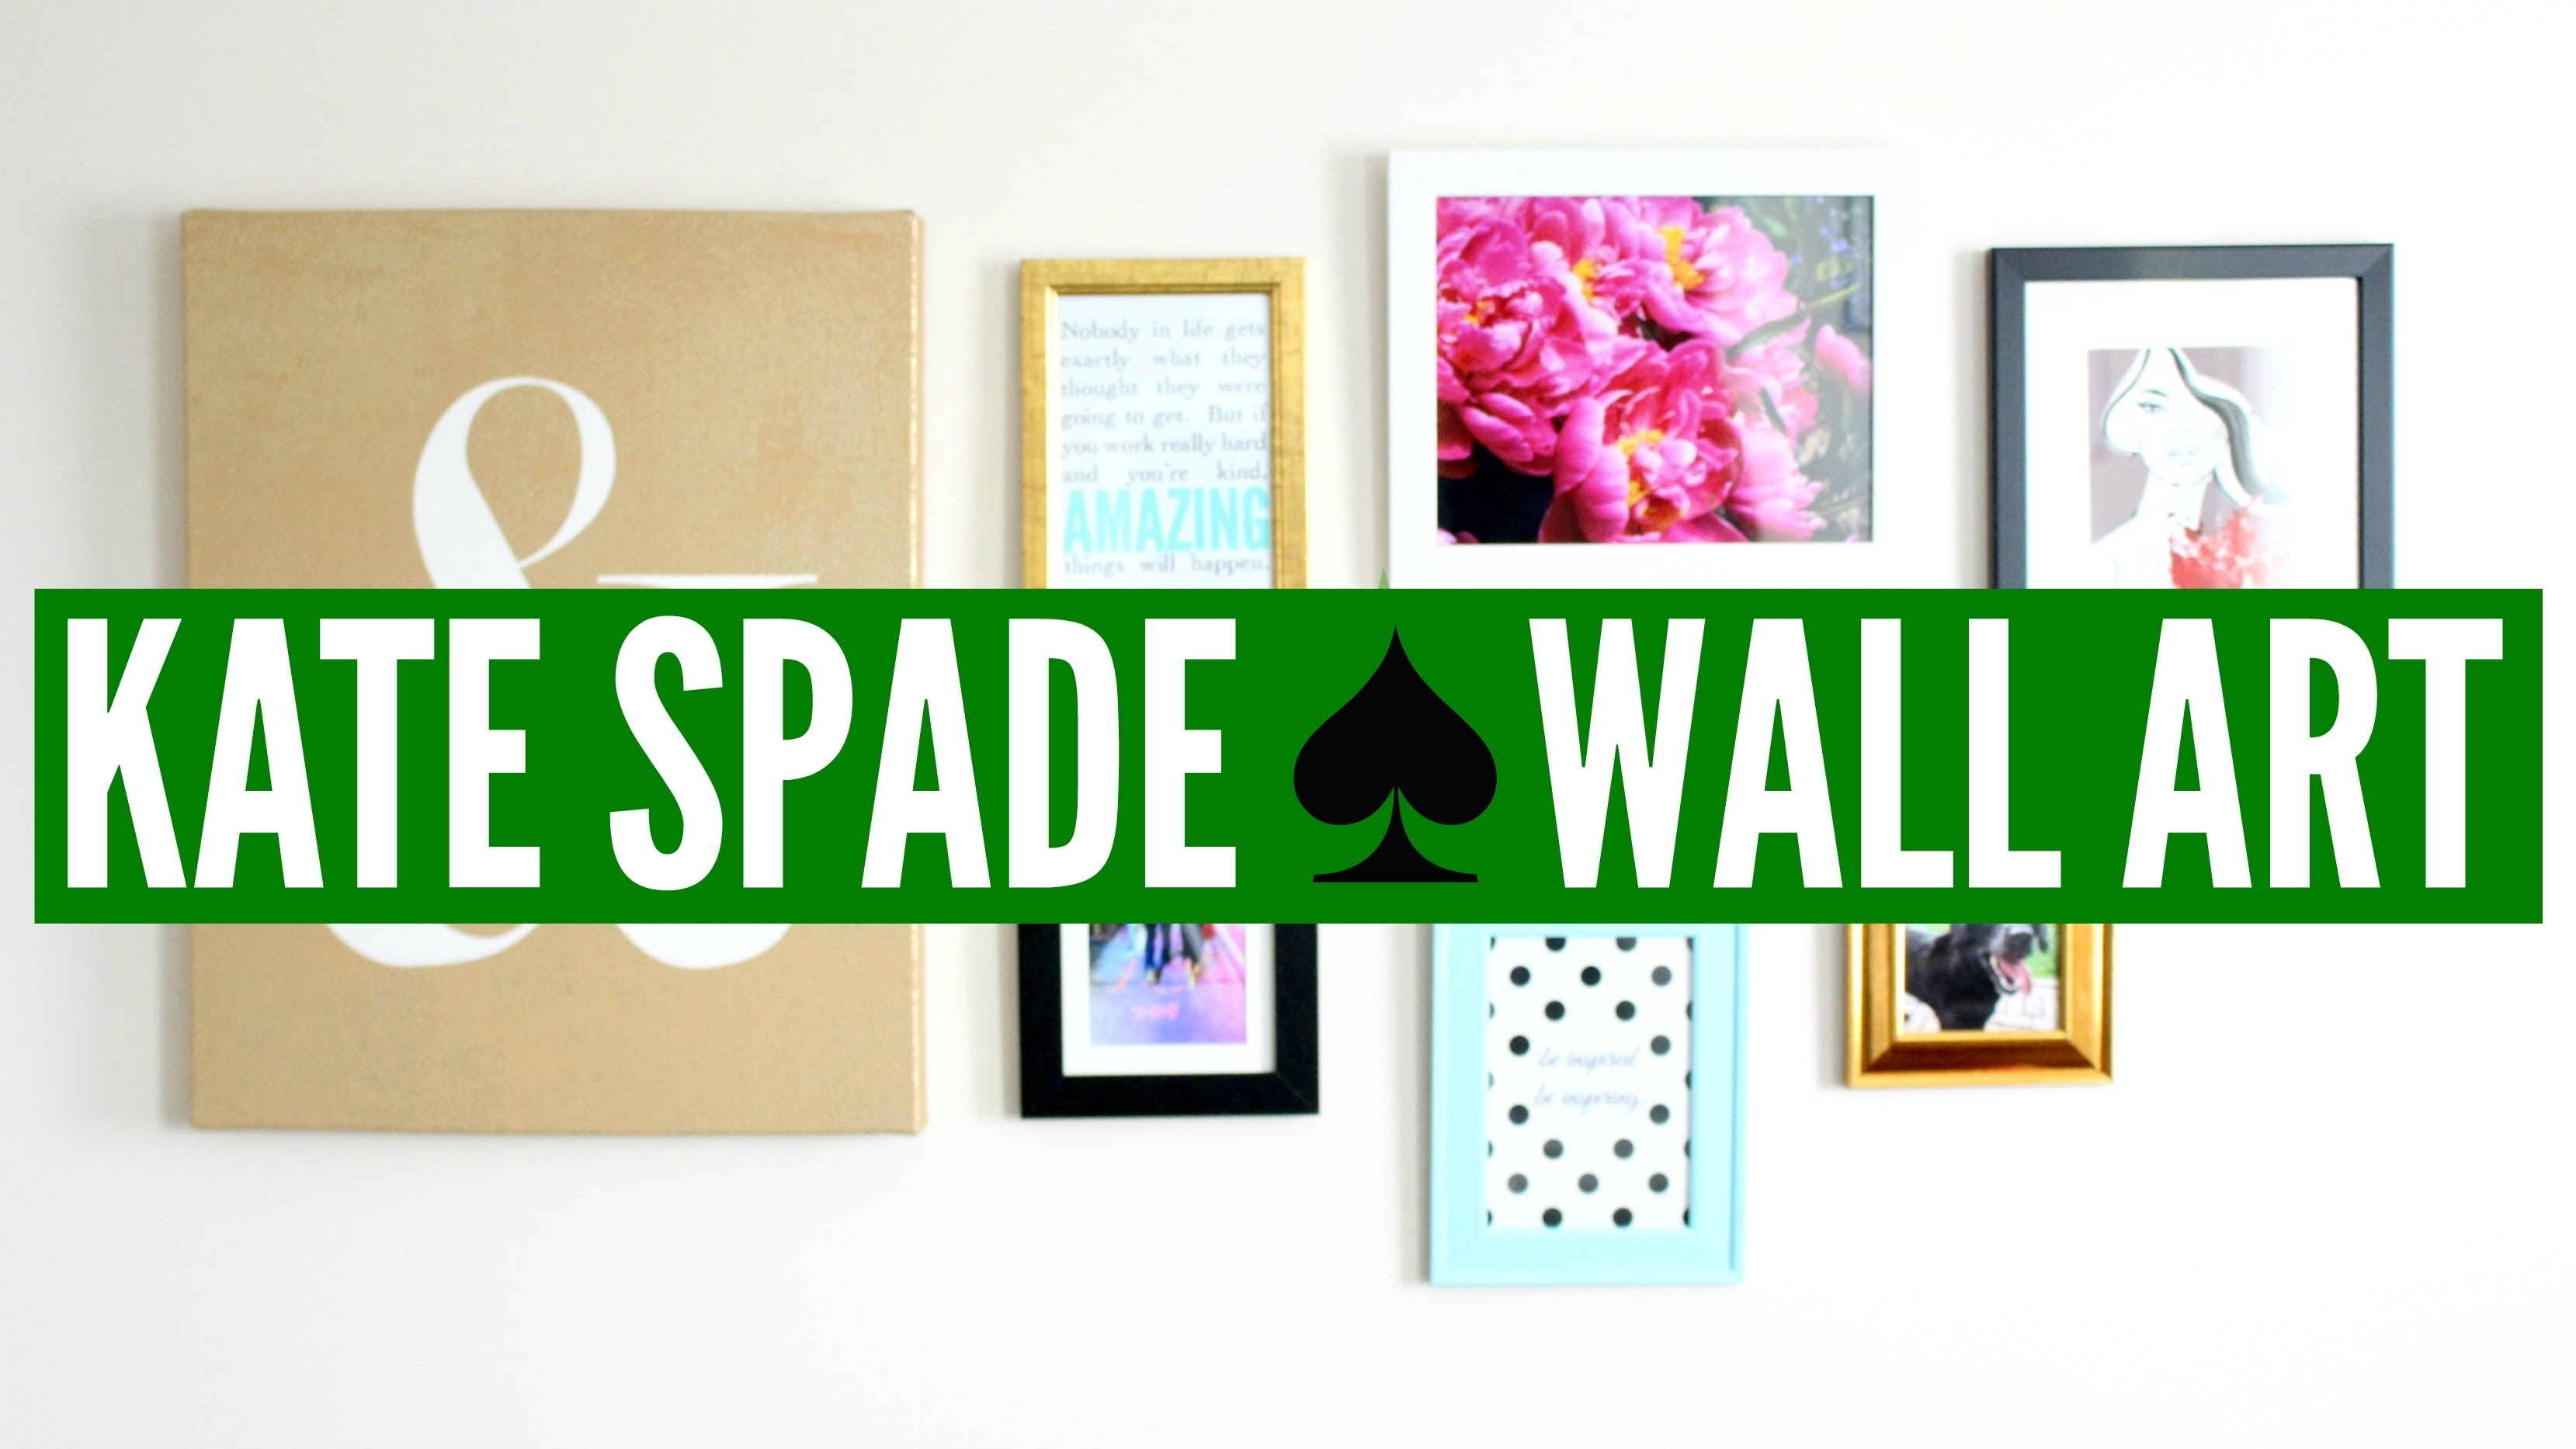 Diy Kate Spade ? Wall Art (collage) | Now&jenn – Youtube Within Best And Newest Kate Spade Wall Art (View 1 of 20)